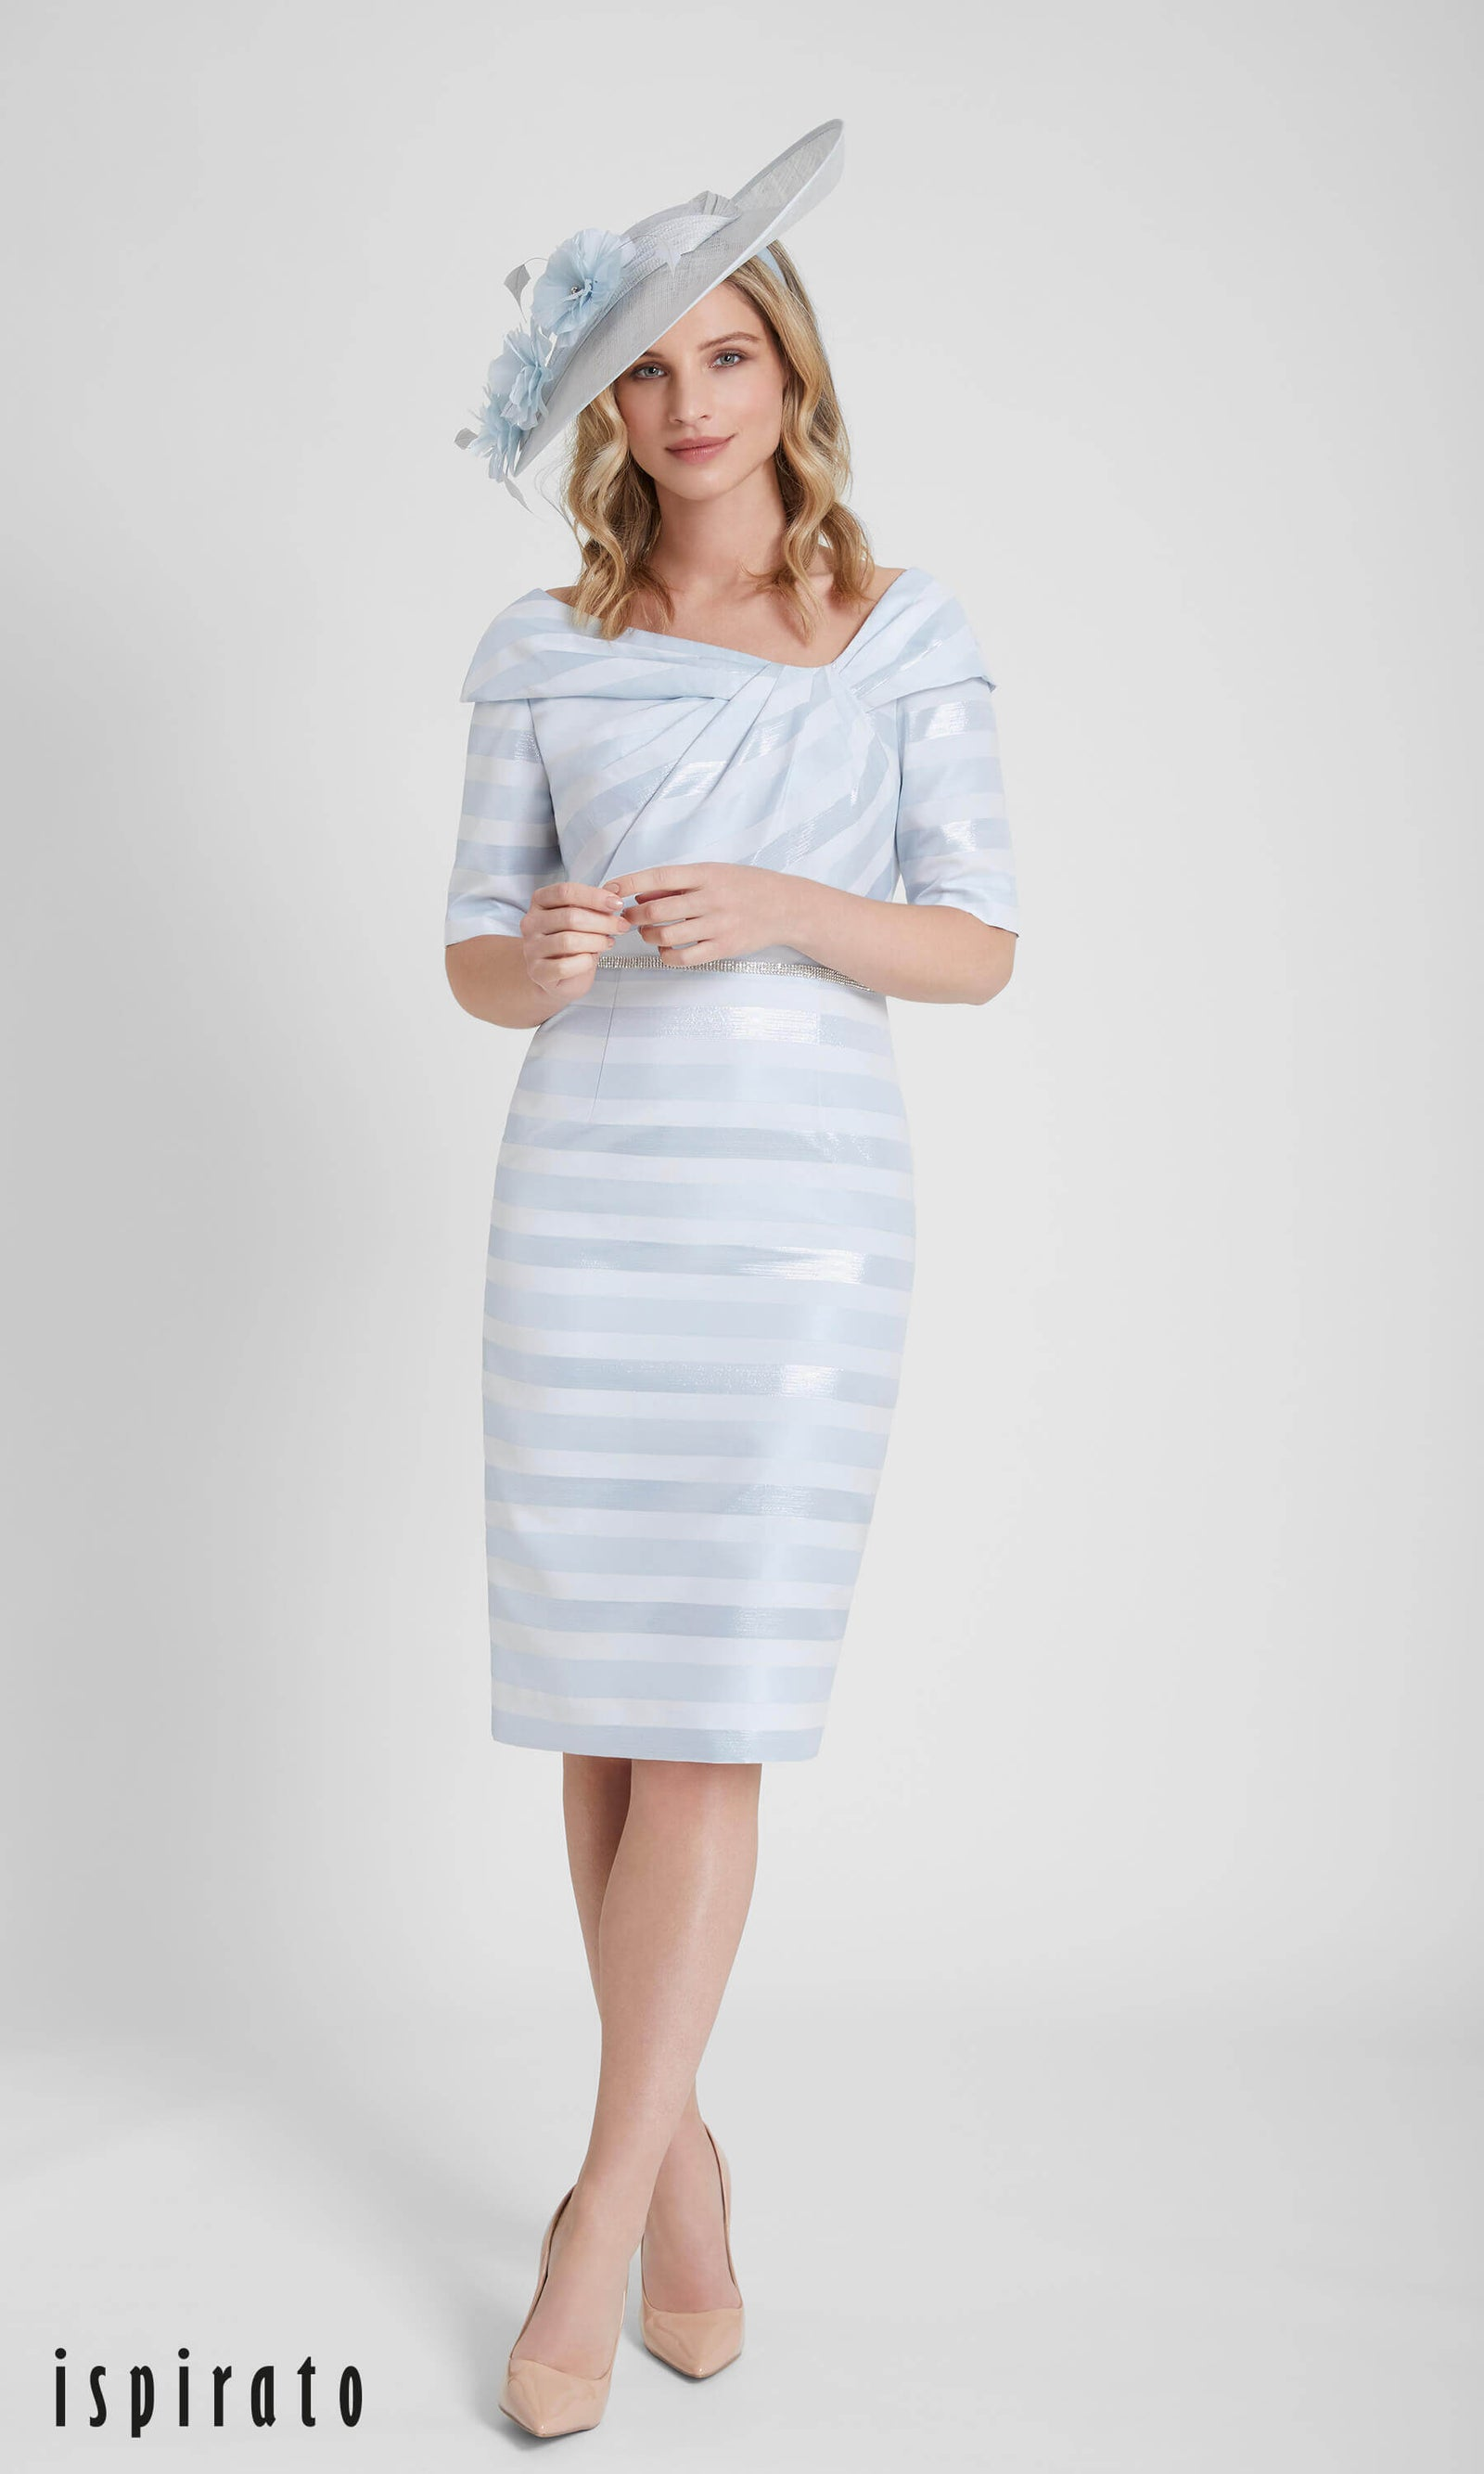 ISF815 Amalfi Sky Blue Ispirato Stripe Occasion Dress - Fab Frocks